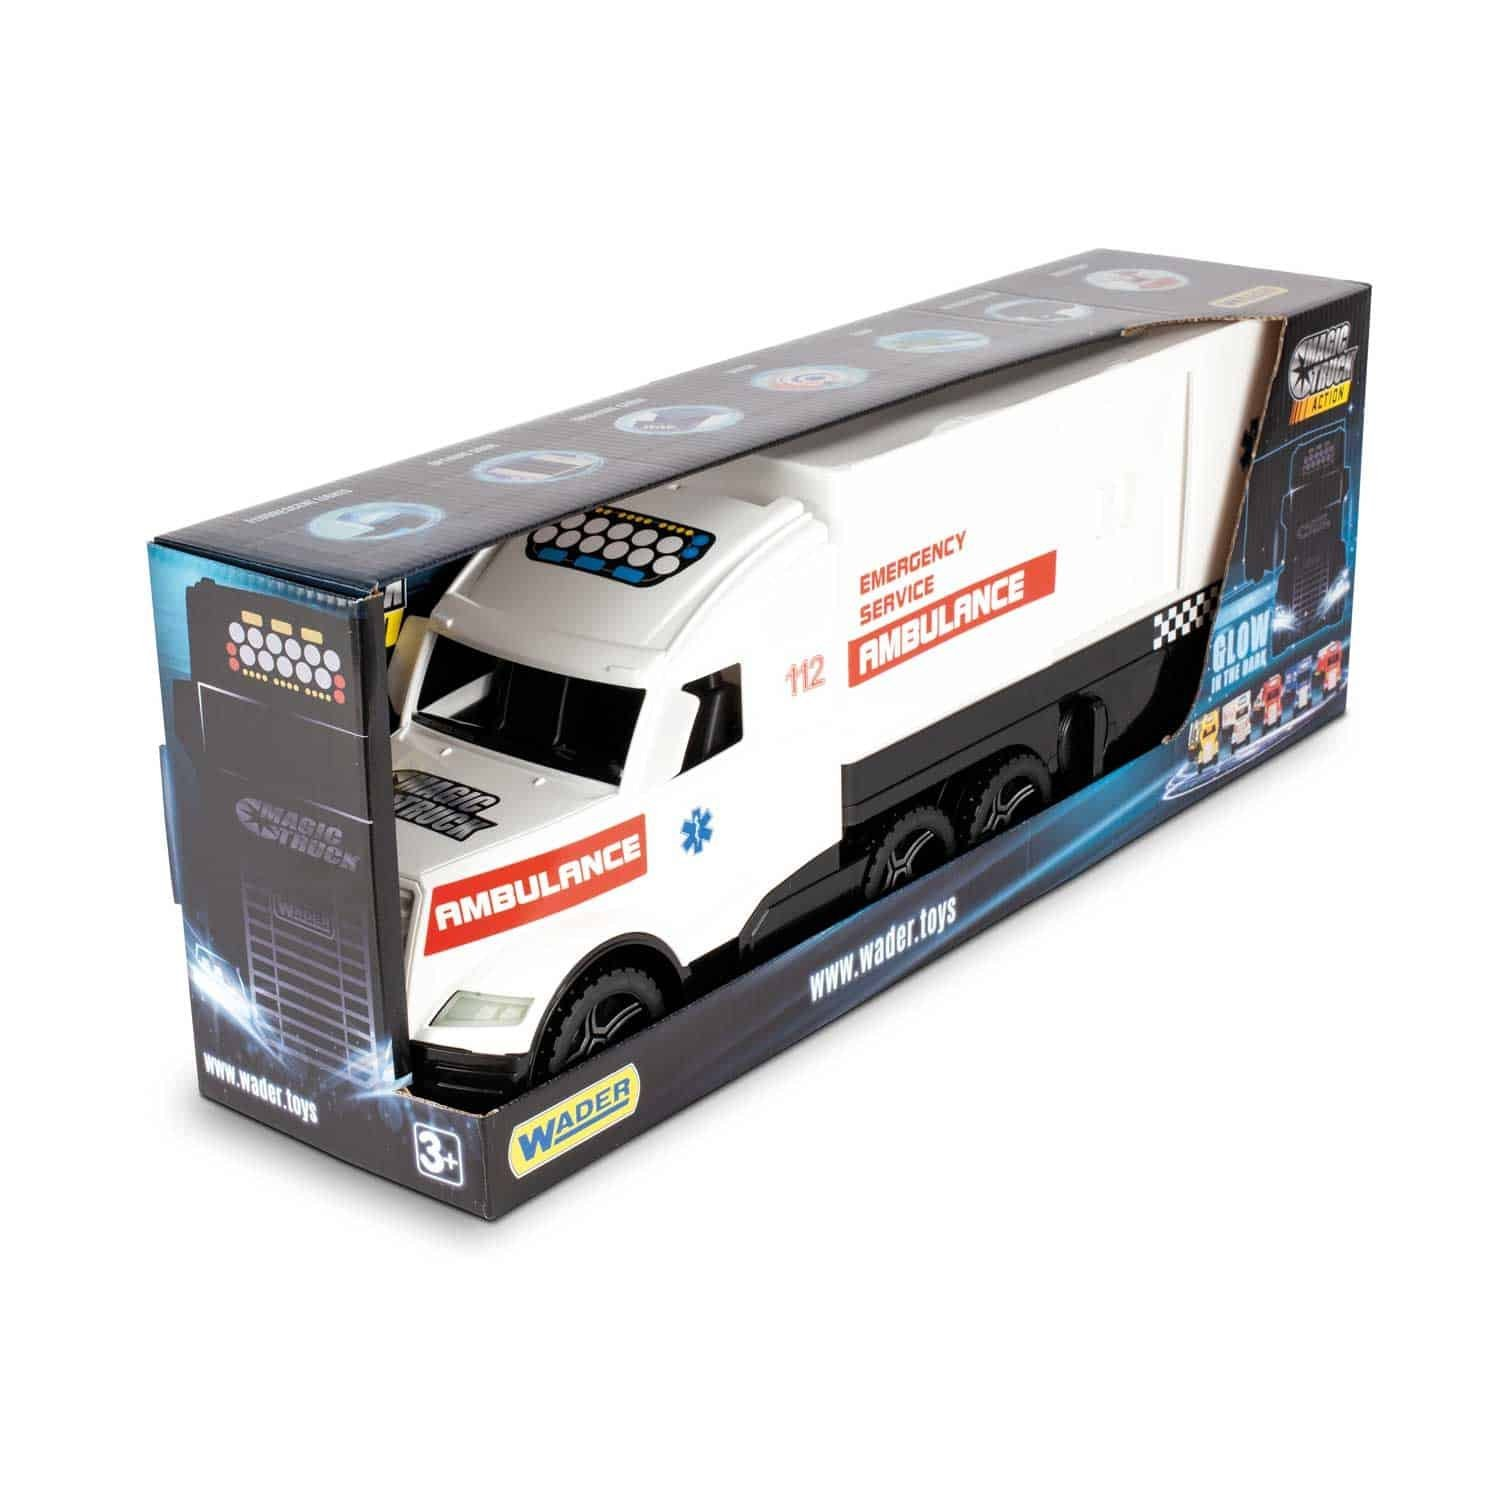 �aha� Magic Truck ACTION ambulancie - zv��i� obr�zok